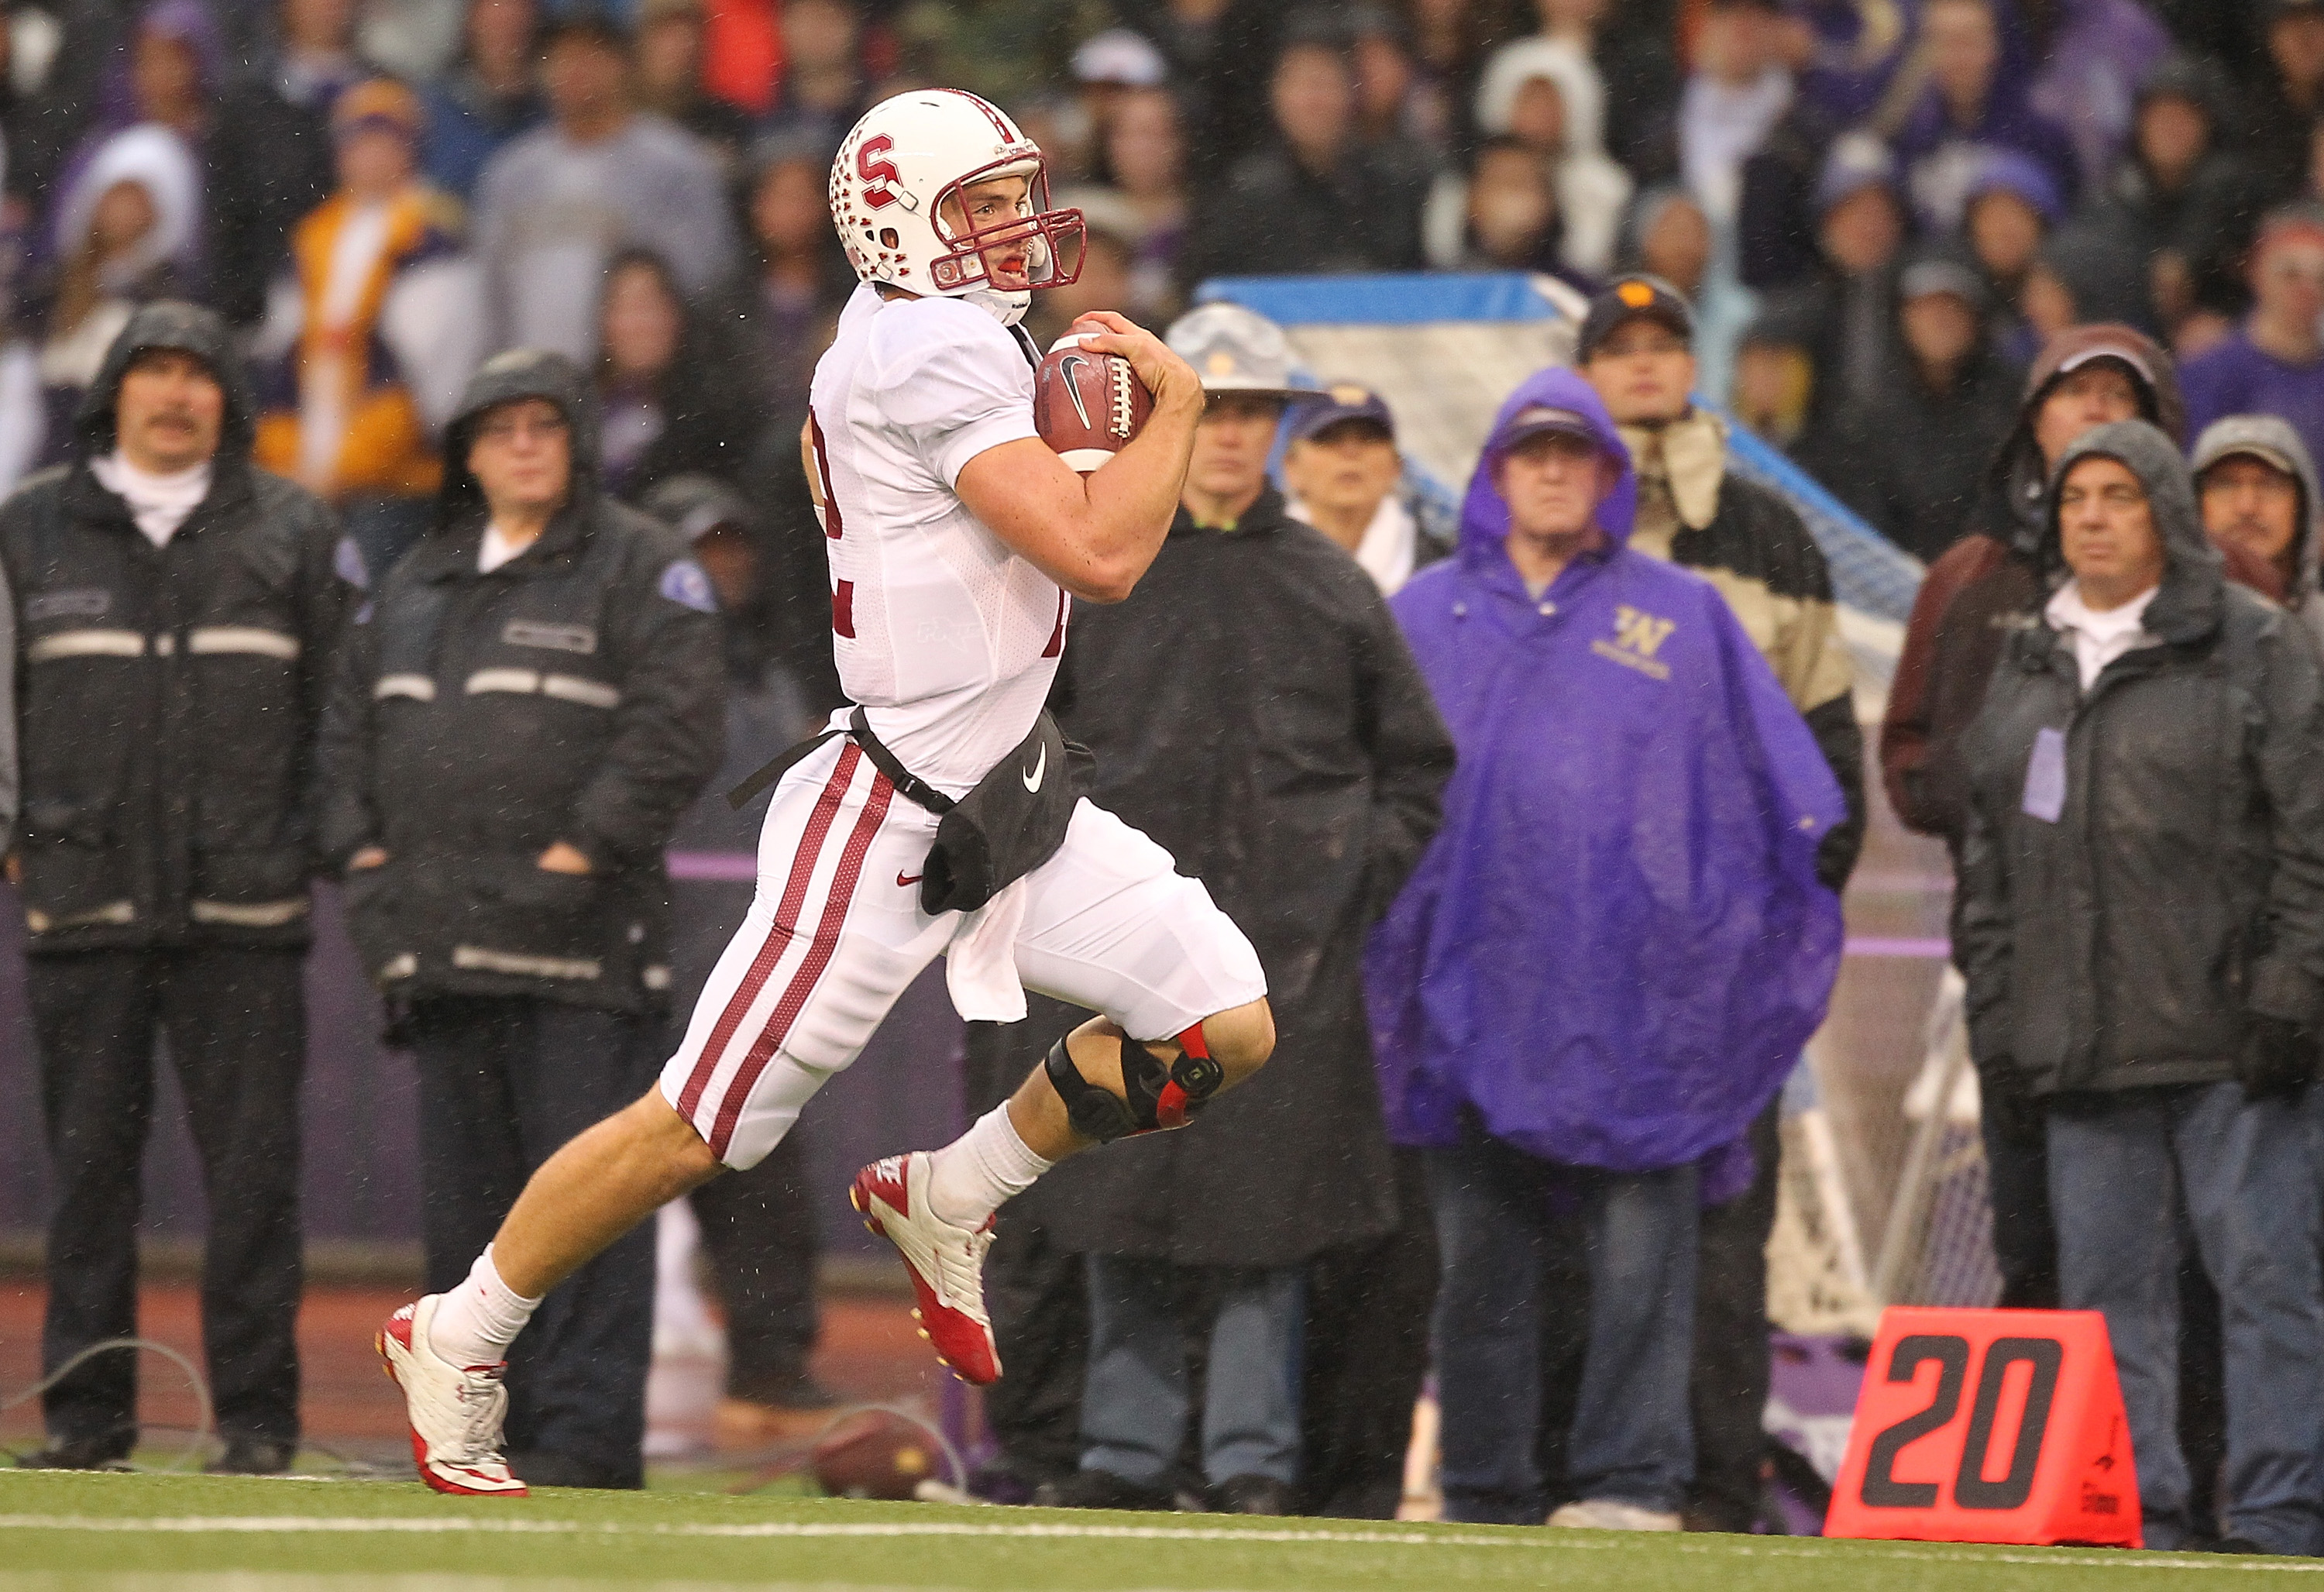 SEATTLE - OCTOBER 30:  Quarterback Andrew Luck #12 of the Stanford Cardinal rushes for a 51 yard touchdown in the first quarter against the Washington Huskies on October 30, 2010 at Husky Stadium in Seattle, Washington. Stanford defeated Washington 41-0.(